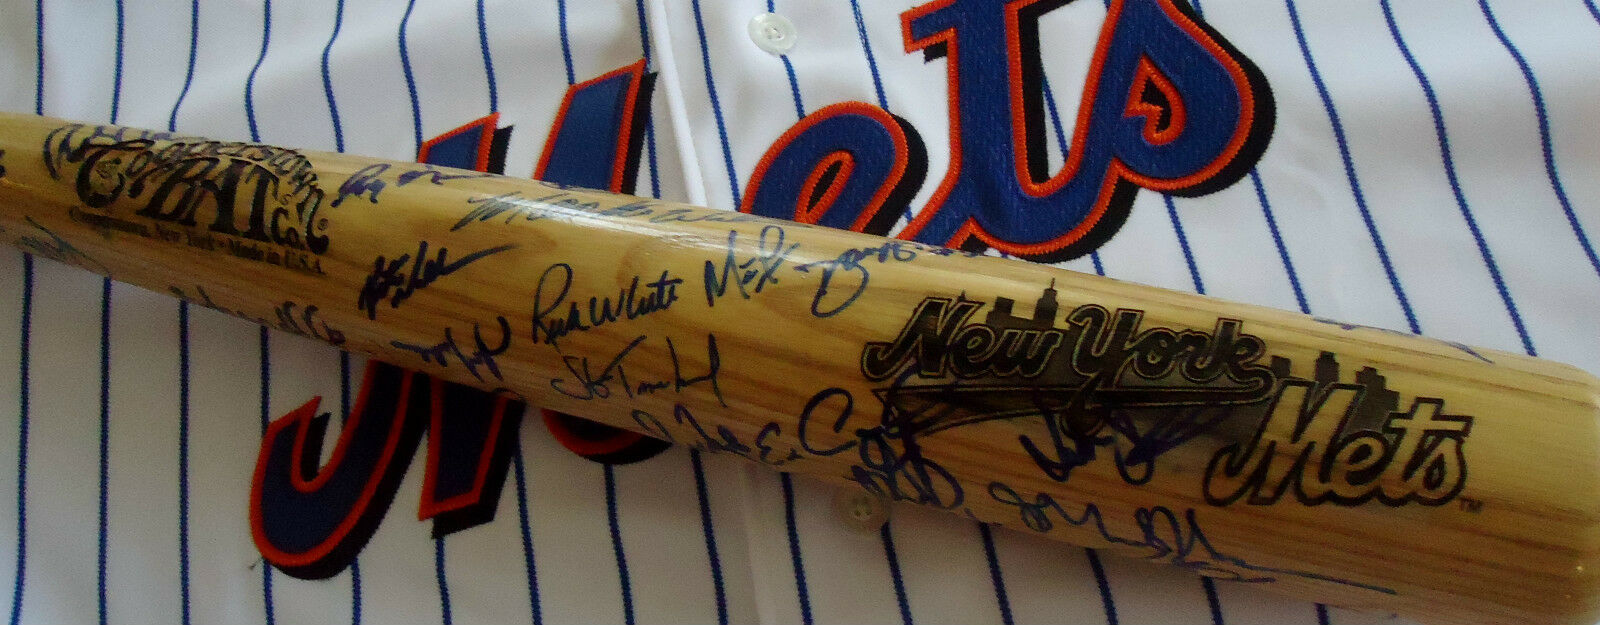 NY METS 2000 TEAM 50 SIGNED COOPERSTOWN BASEBALL BAT -> note: SEE LISTED PLAYERS